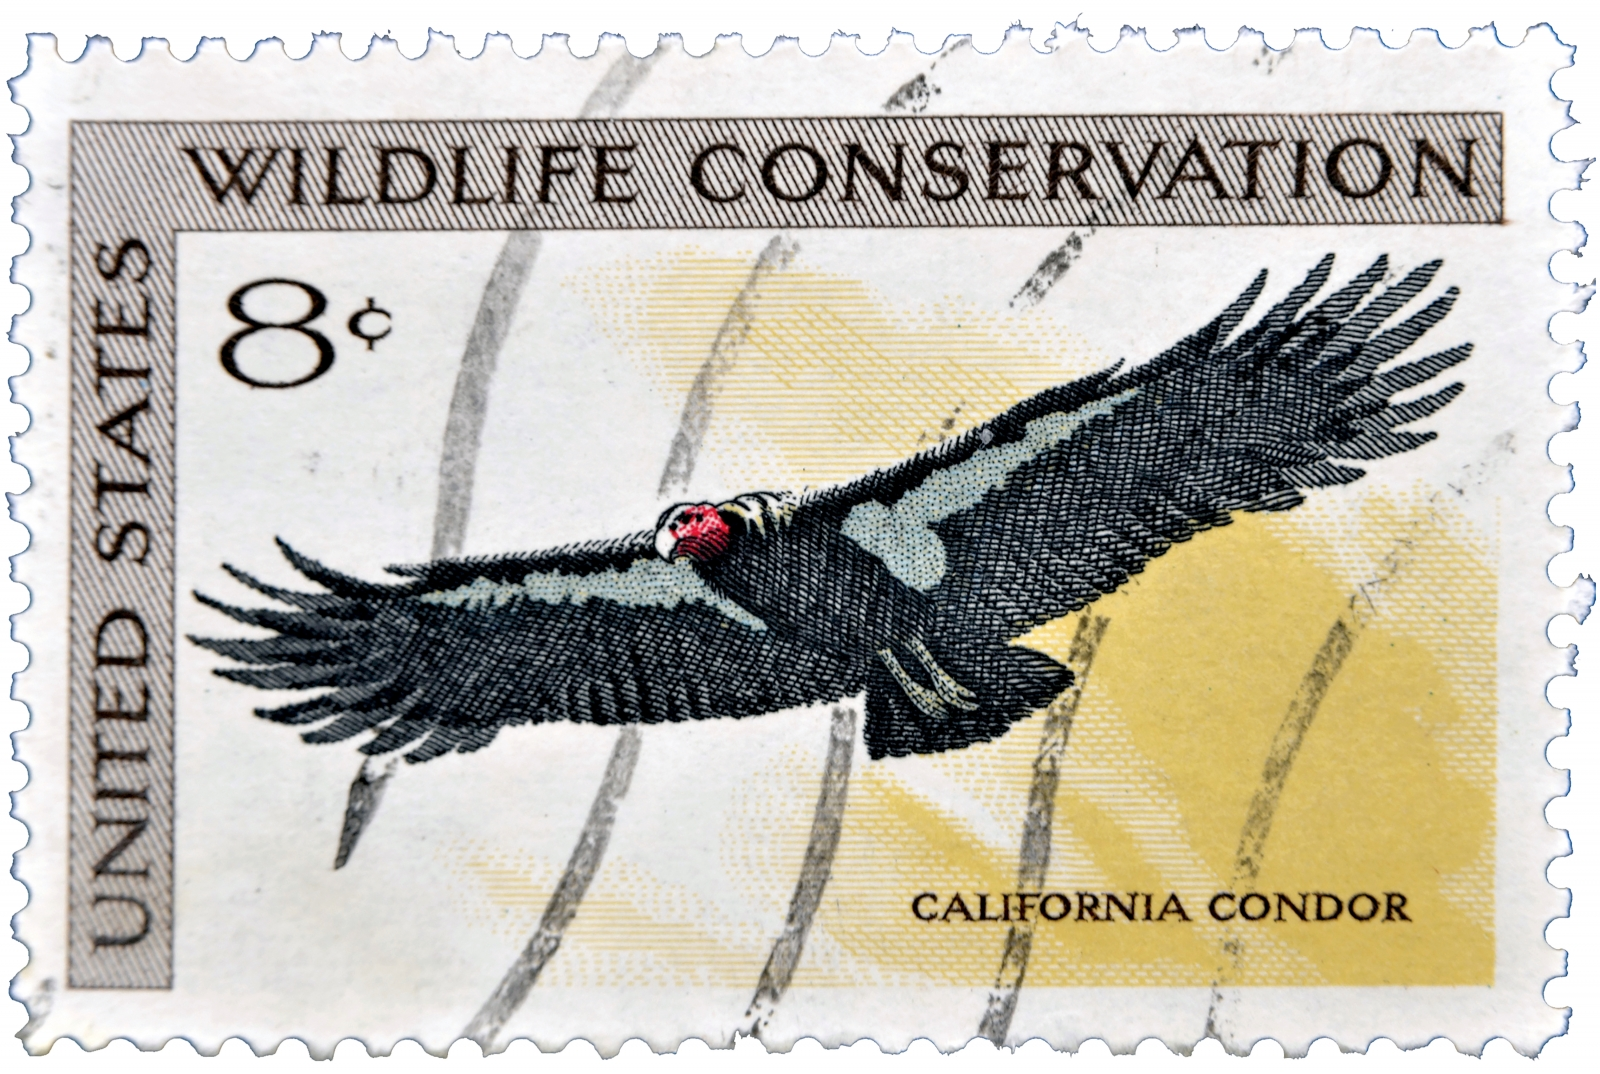 Advances in genomics allowed scientists to rescue the California condor from extinction, rebuilding the wild population from 22 birds to almost 300 through targeted breeding.